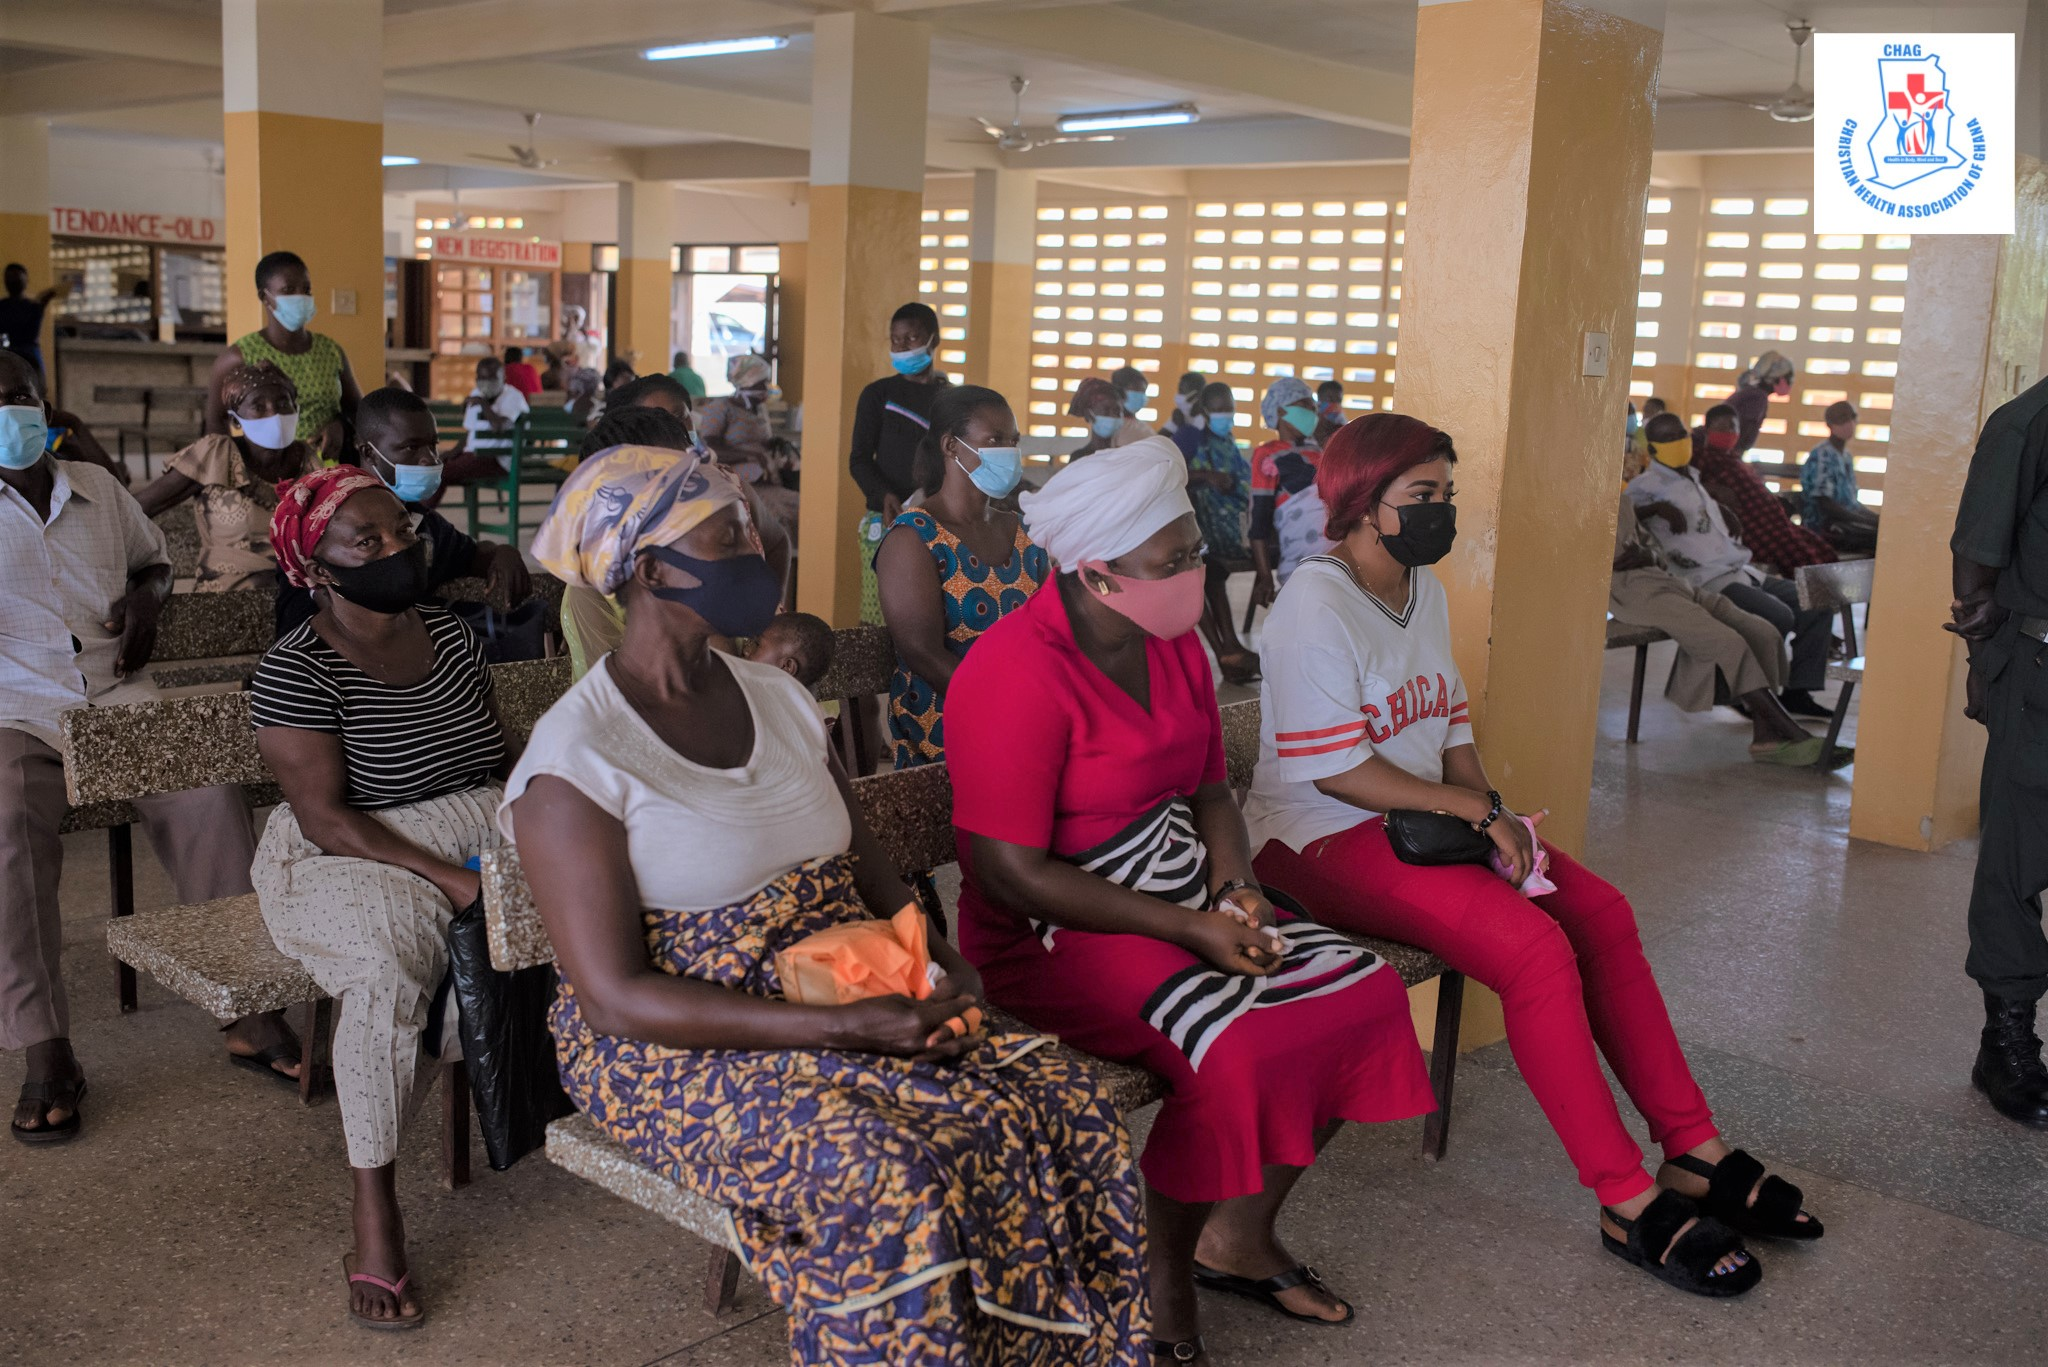 Women sit in rows listening to COVID educational messages